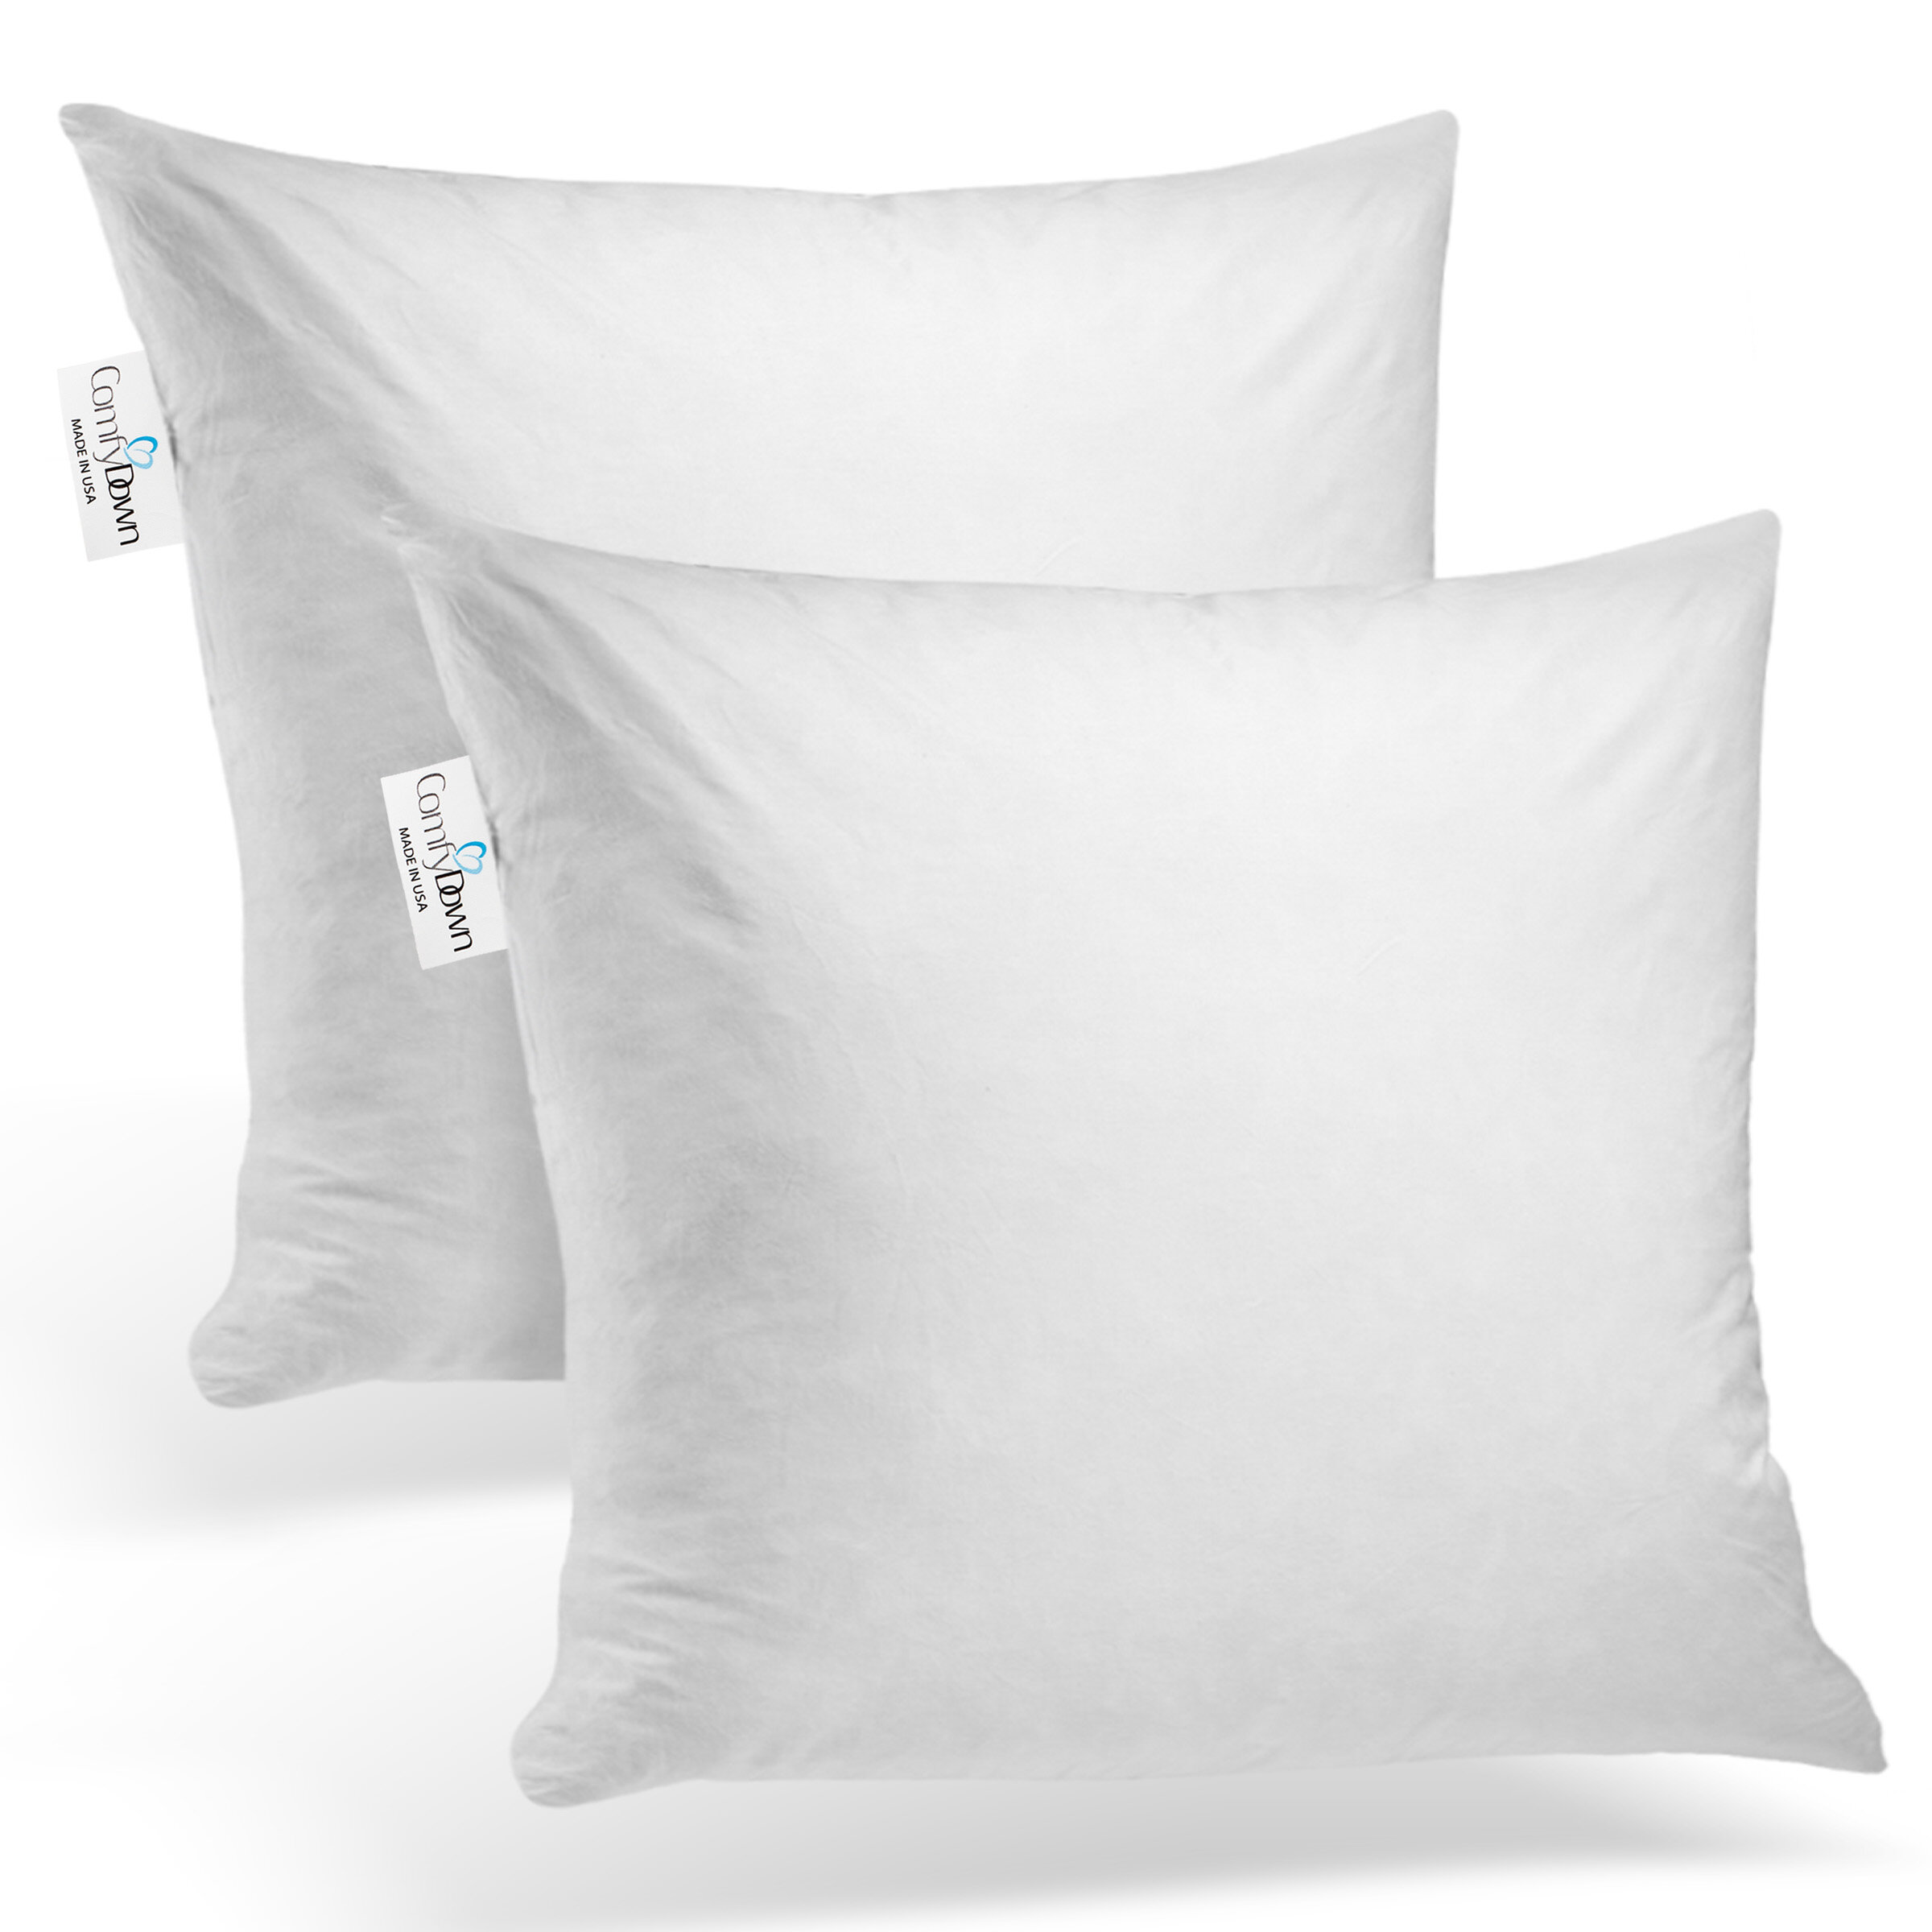 Small White Throw Pillows You Ll Love In 2021 Wayfair